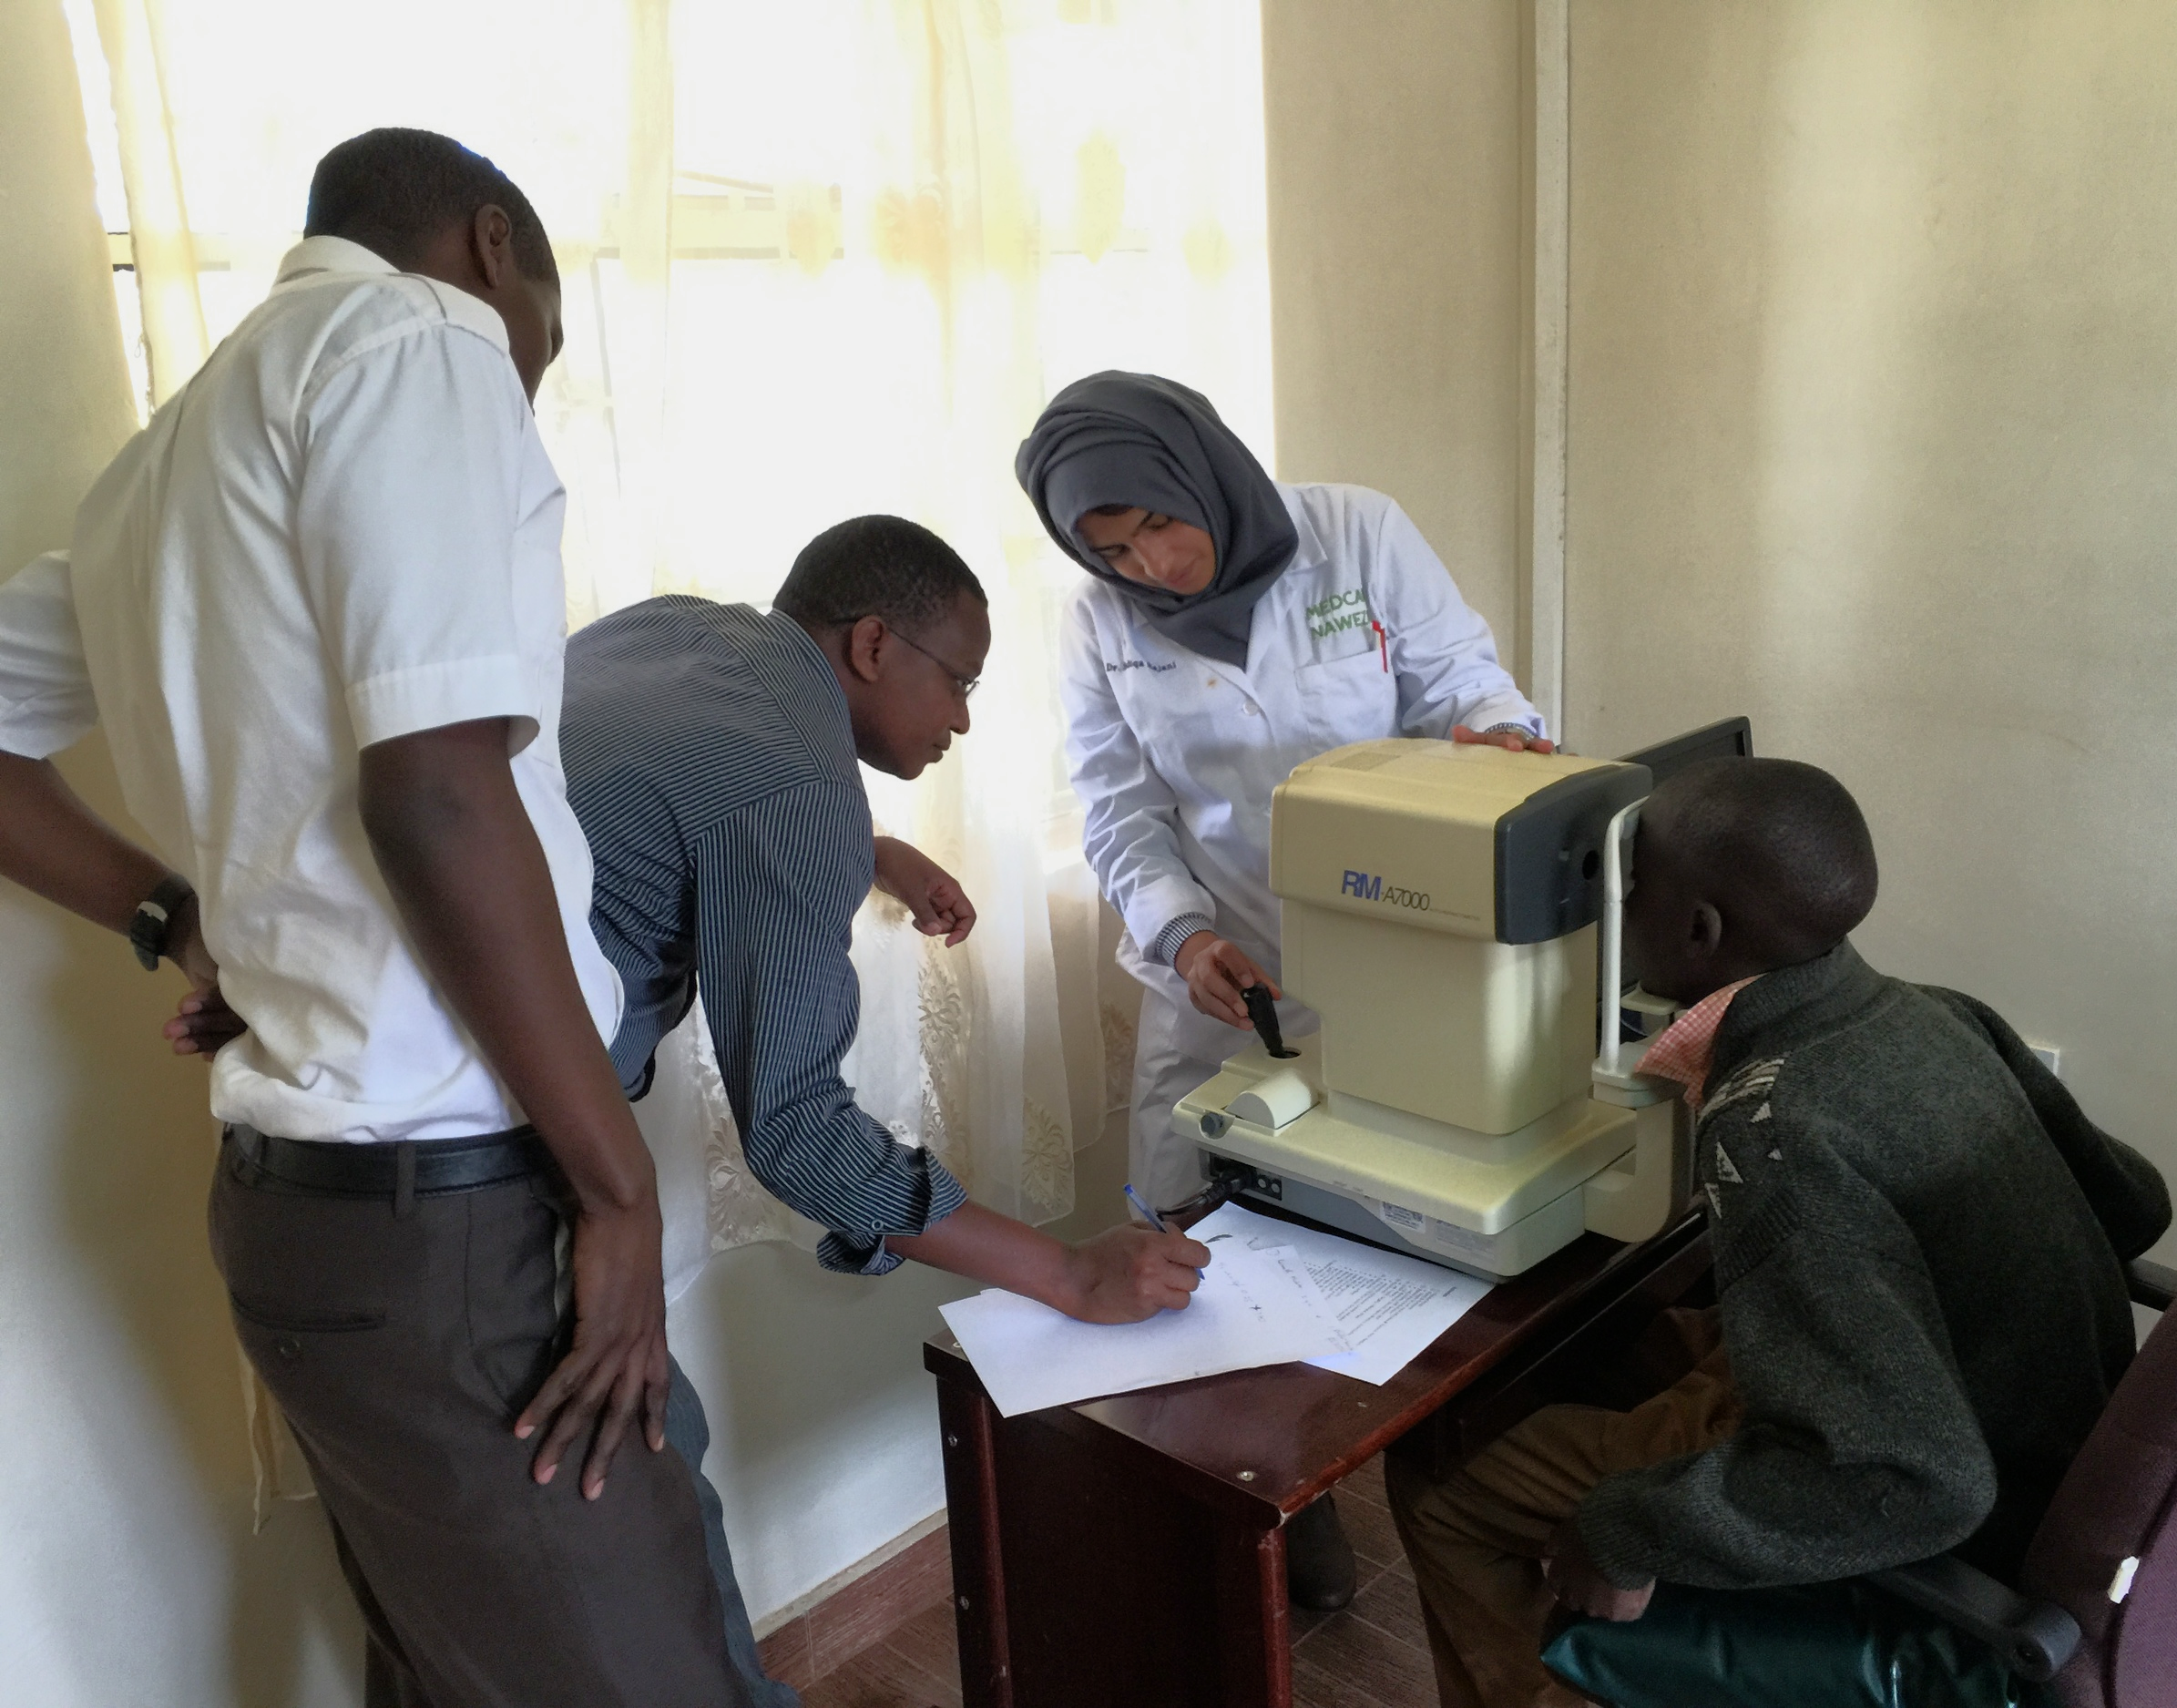 Dr. Sidiqa with Ezekiel and Geoffrey training on the auto-refractor.